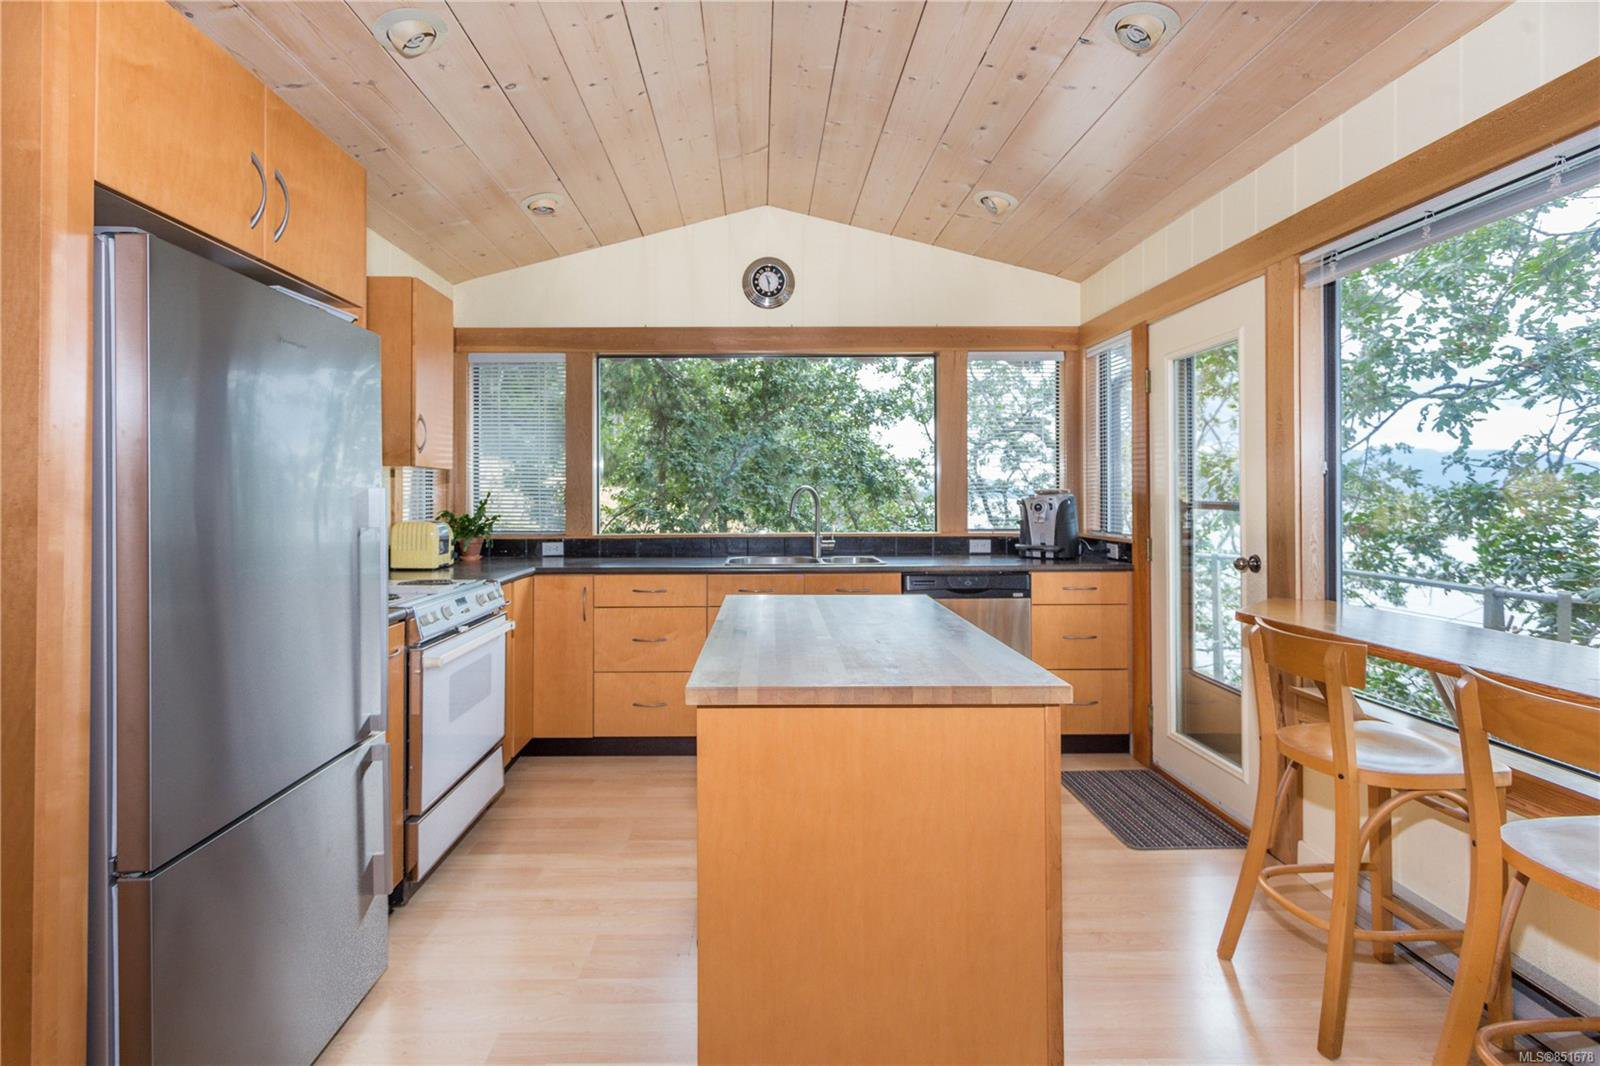 Photo 7: Photos: 262 Forbes Dr in : Isl Thetis Island House for sale (Islands)  : MLS®# 851678